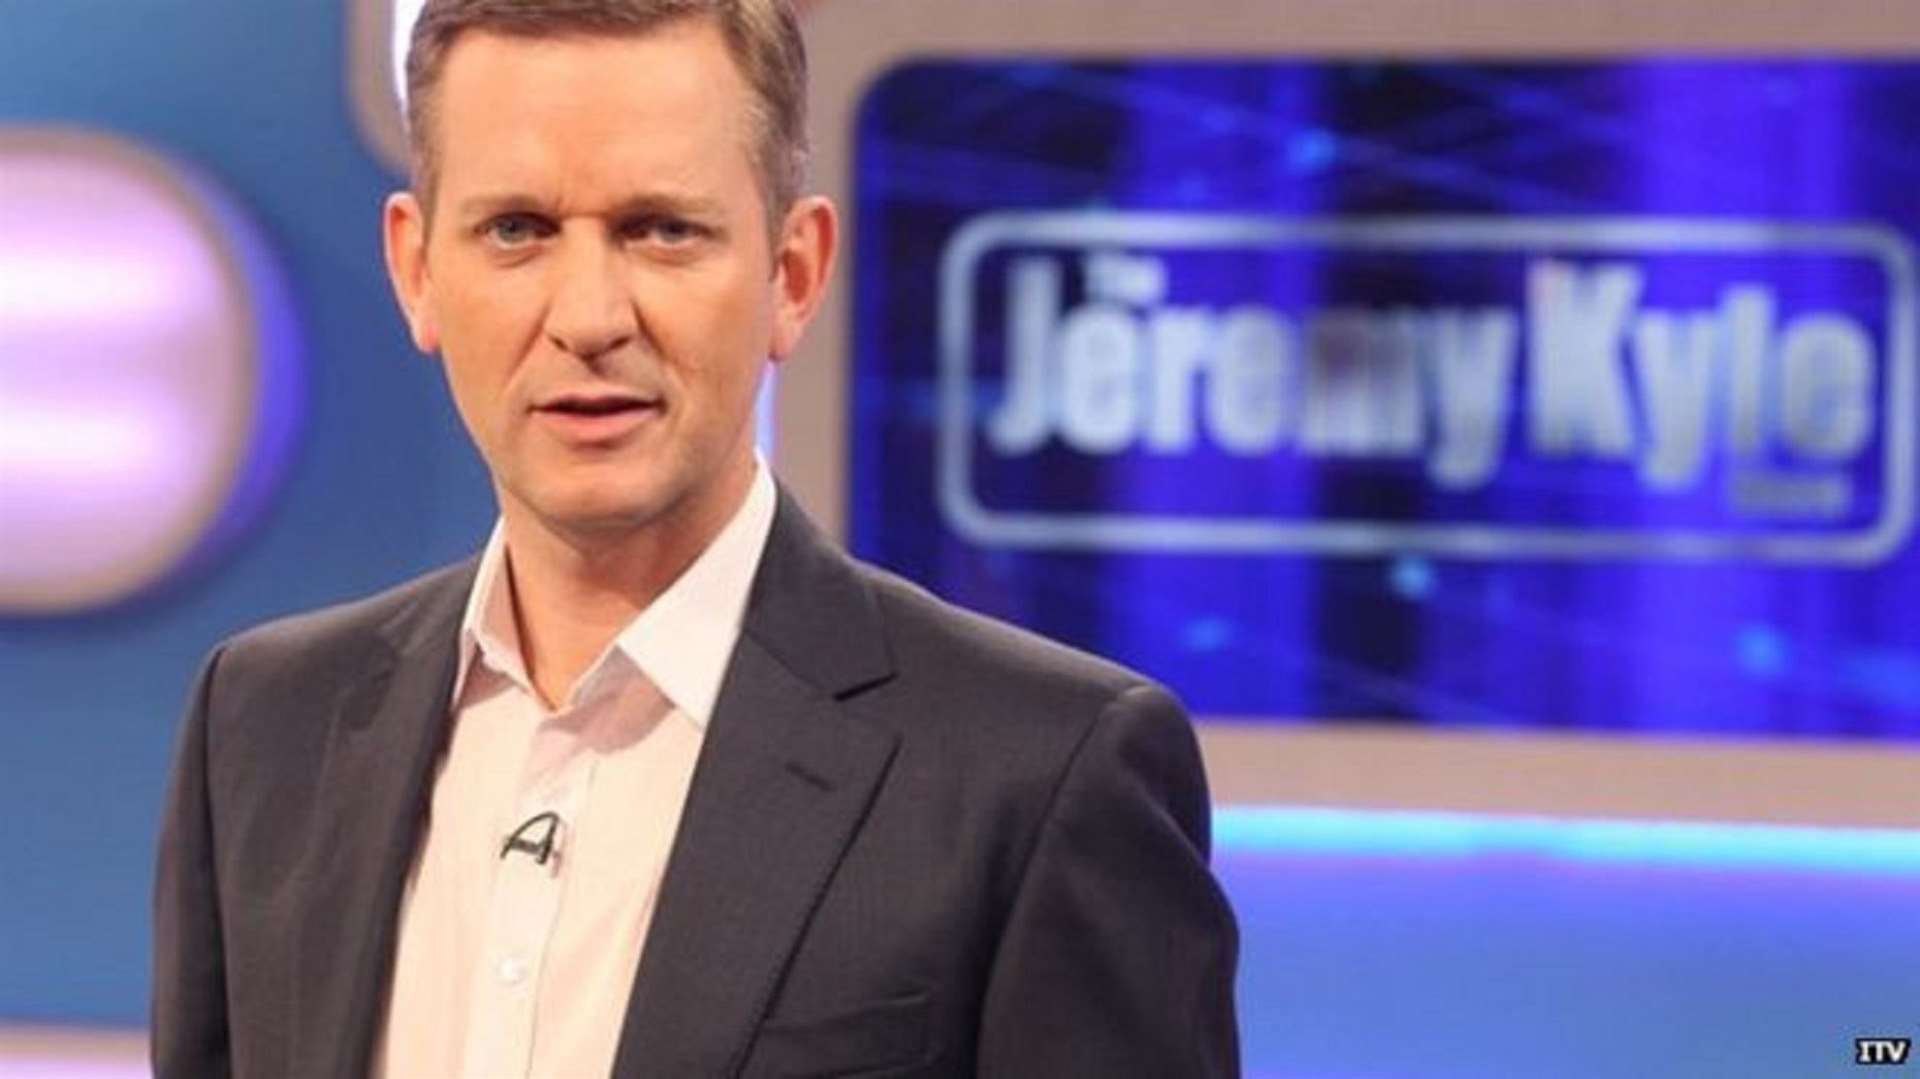 Jeremy Kyle was subject to the inquiry into his show following the death of one of the guests.